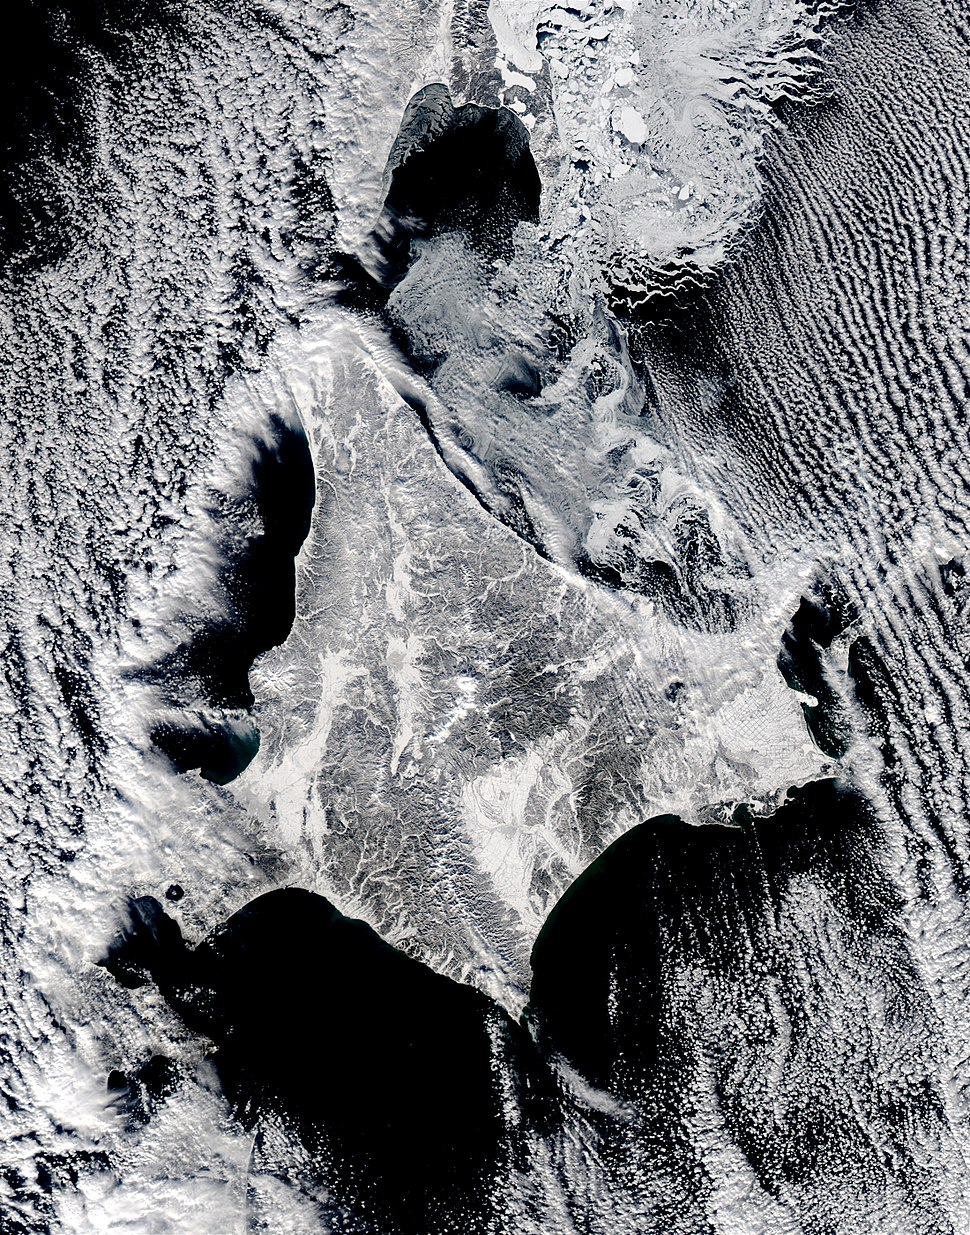 Satellite image of Hokkaido, Japan in January 2003